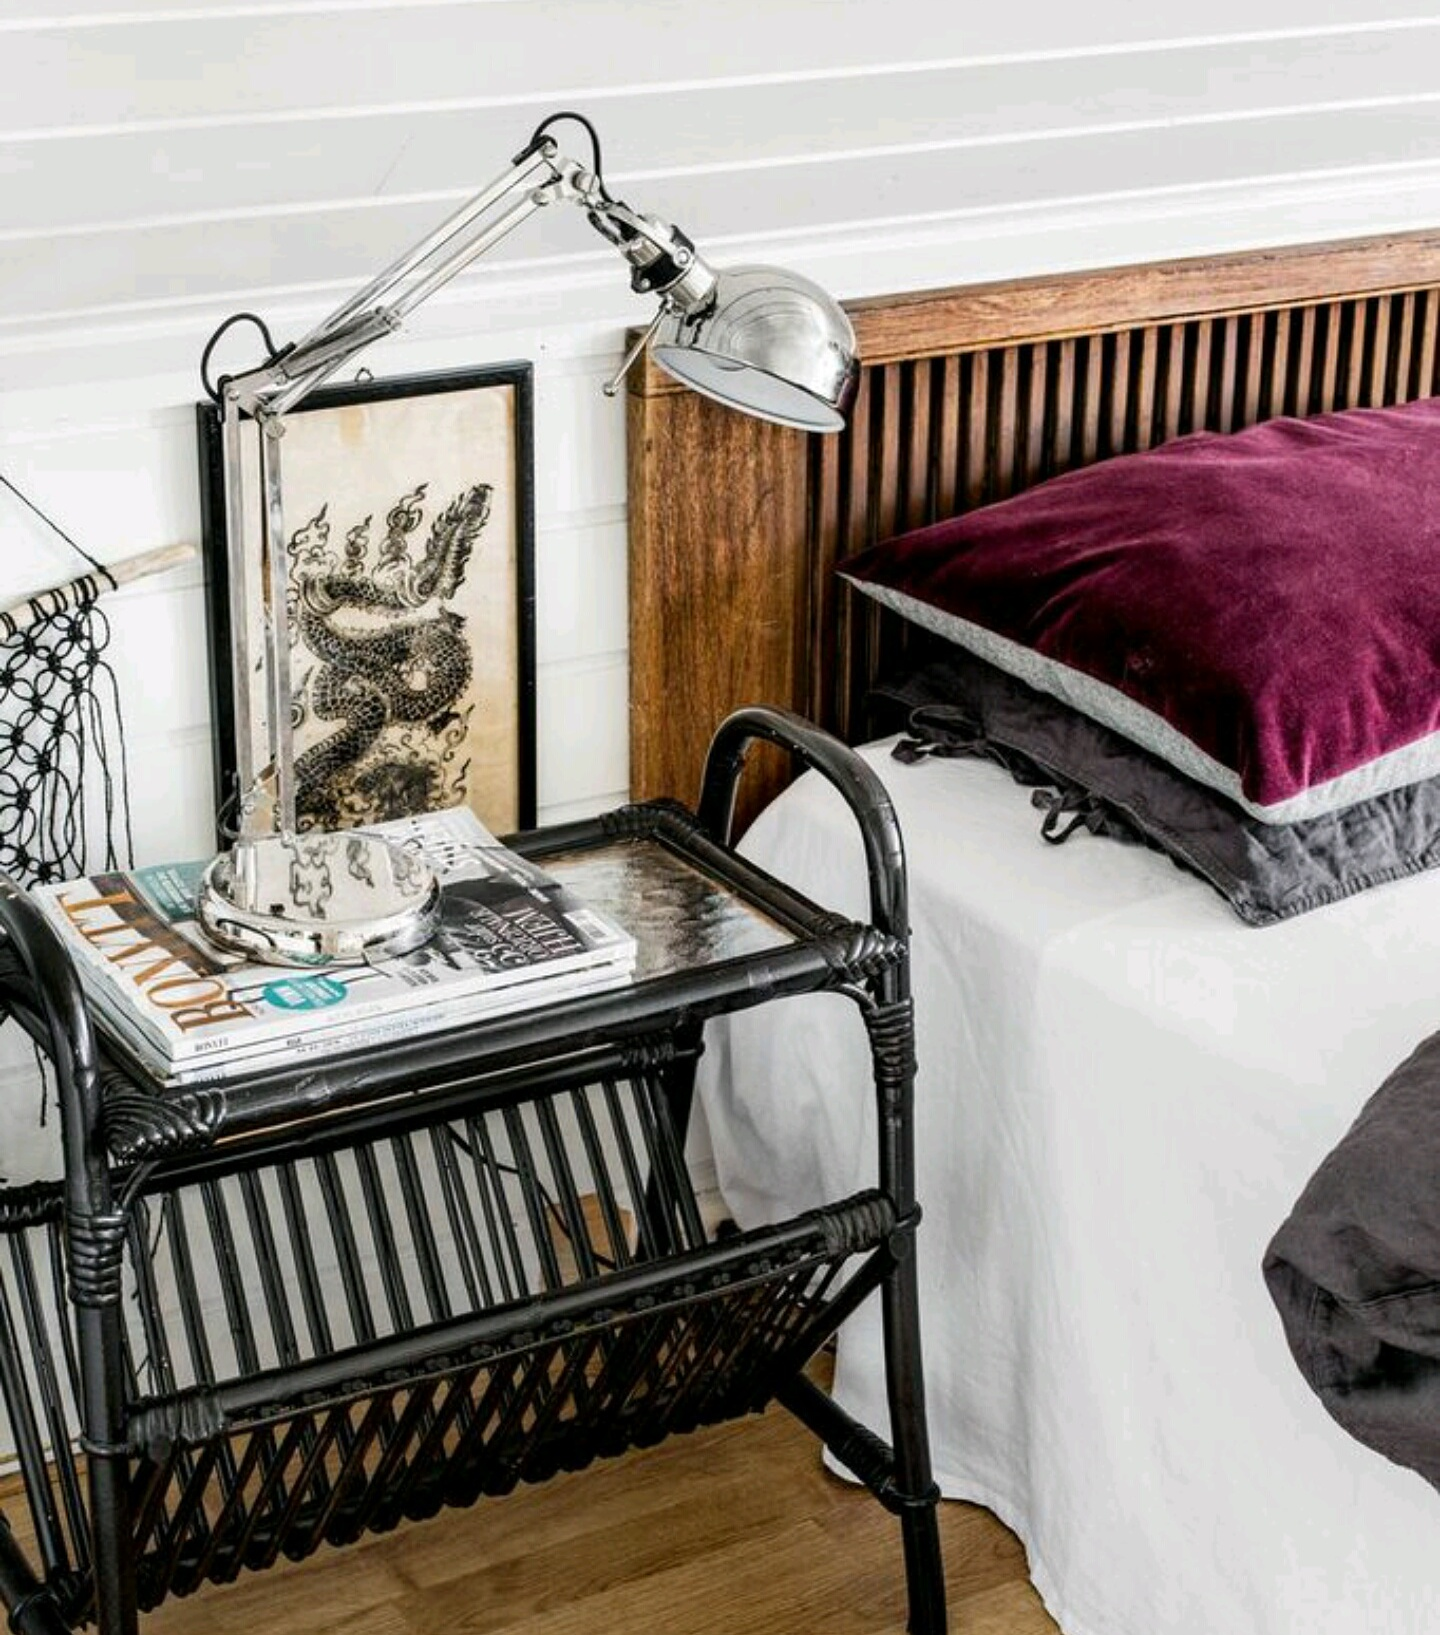 The couple's bedroom is bright and airy. The bedside table is another flea find that Hildegard painted.